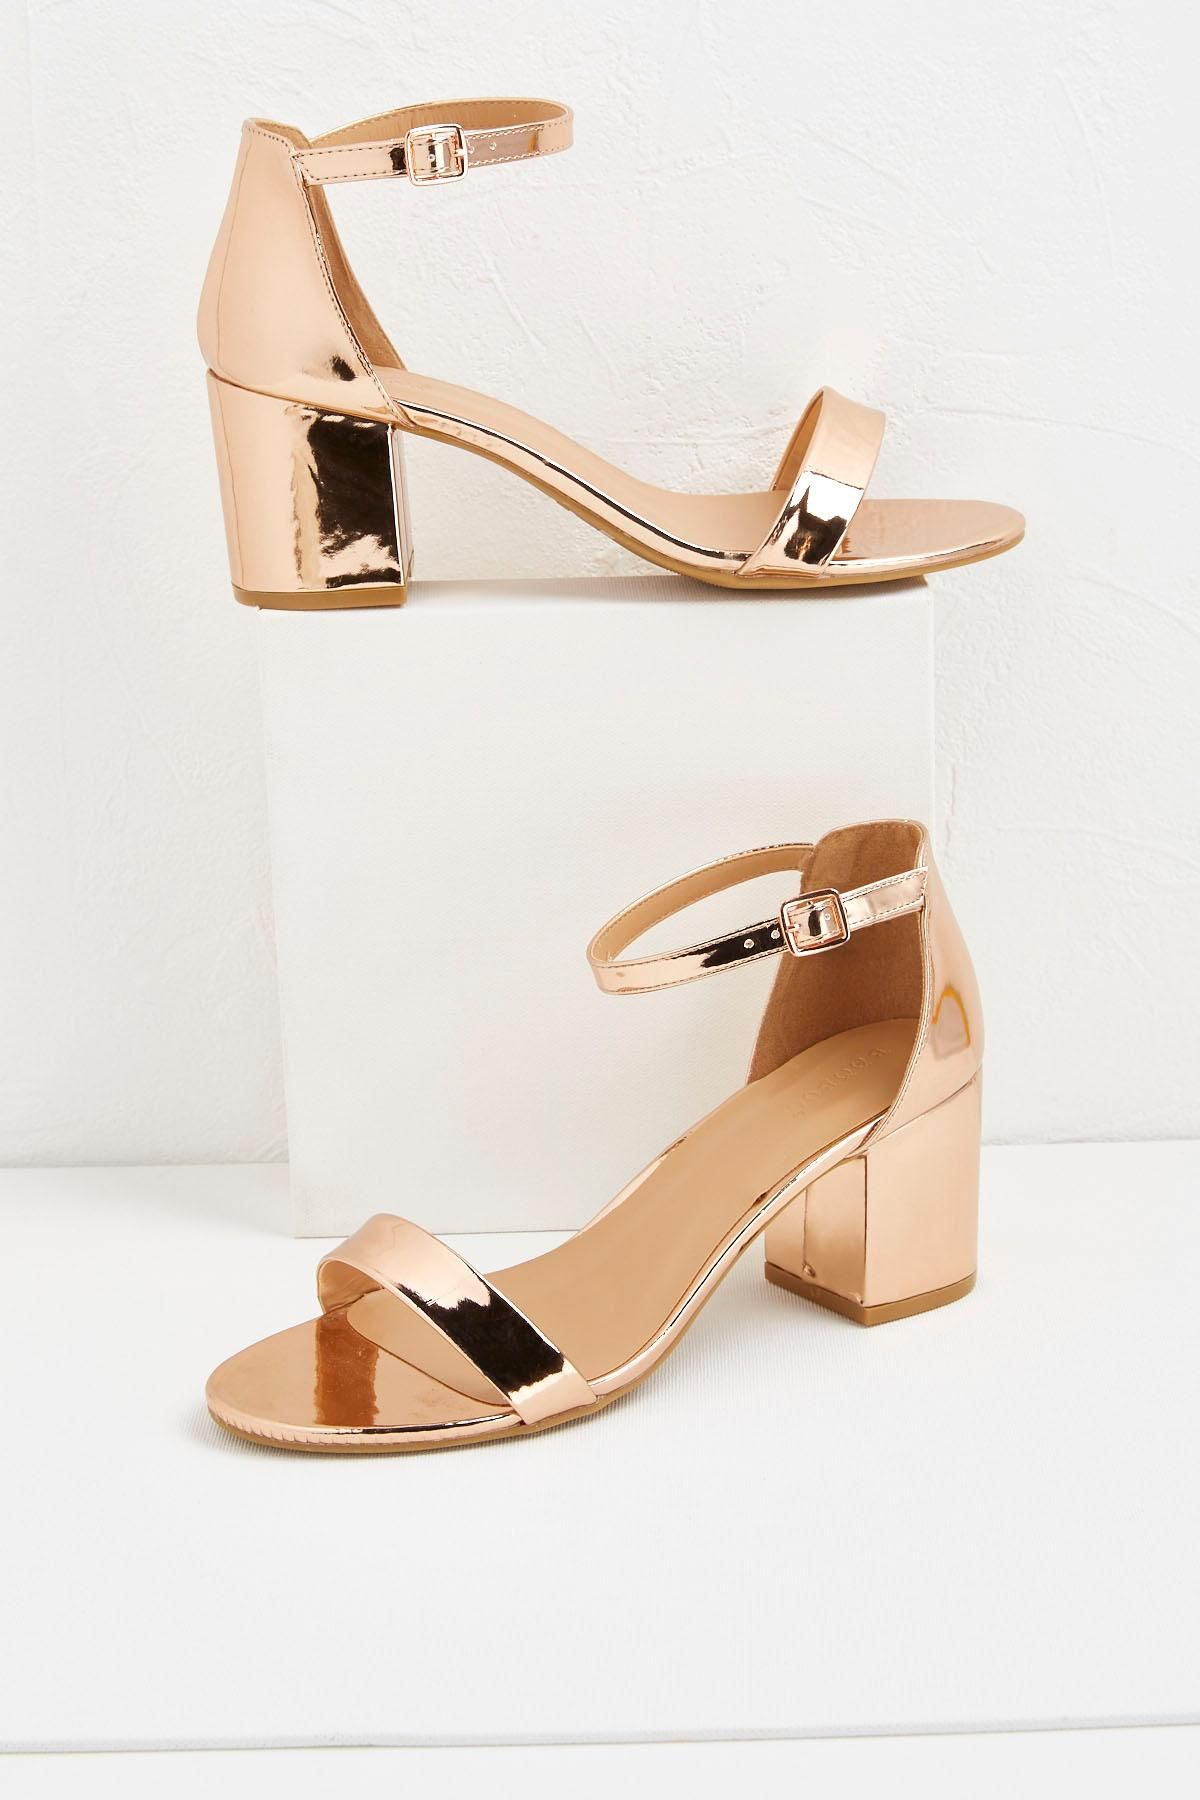 97c9c60920f These trendy heels feature low block heels and skinny ankle straps for a  chic look.  versona  myversonastyle  shopversona  metallics  fall